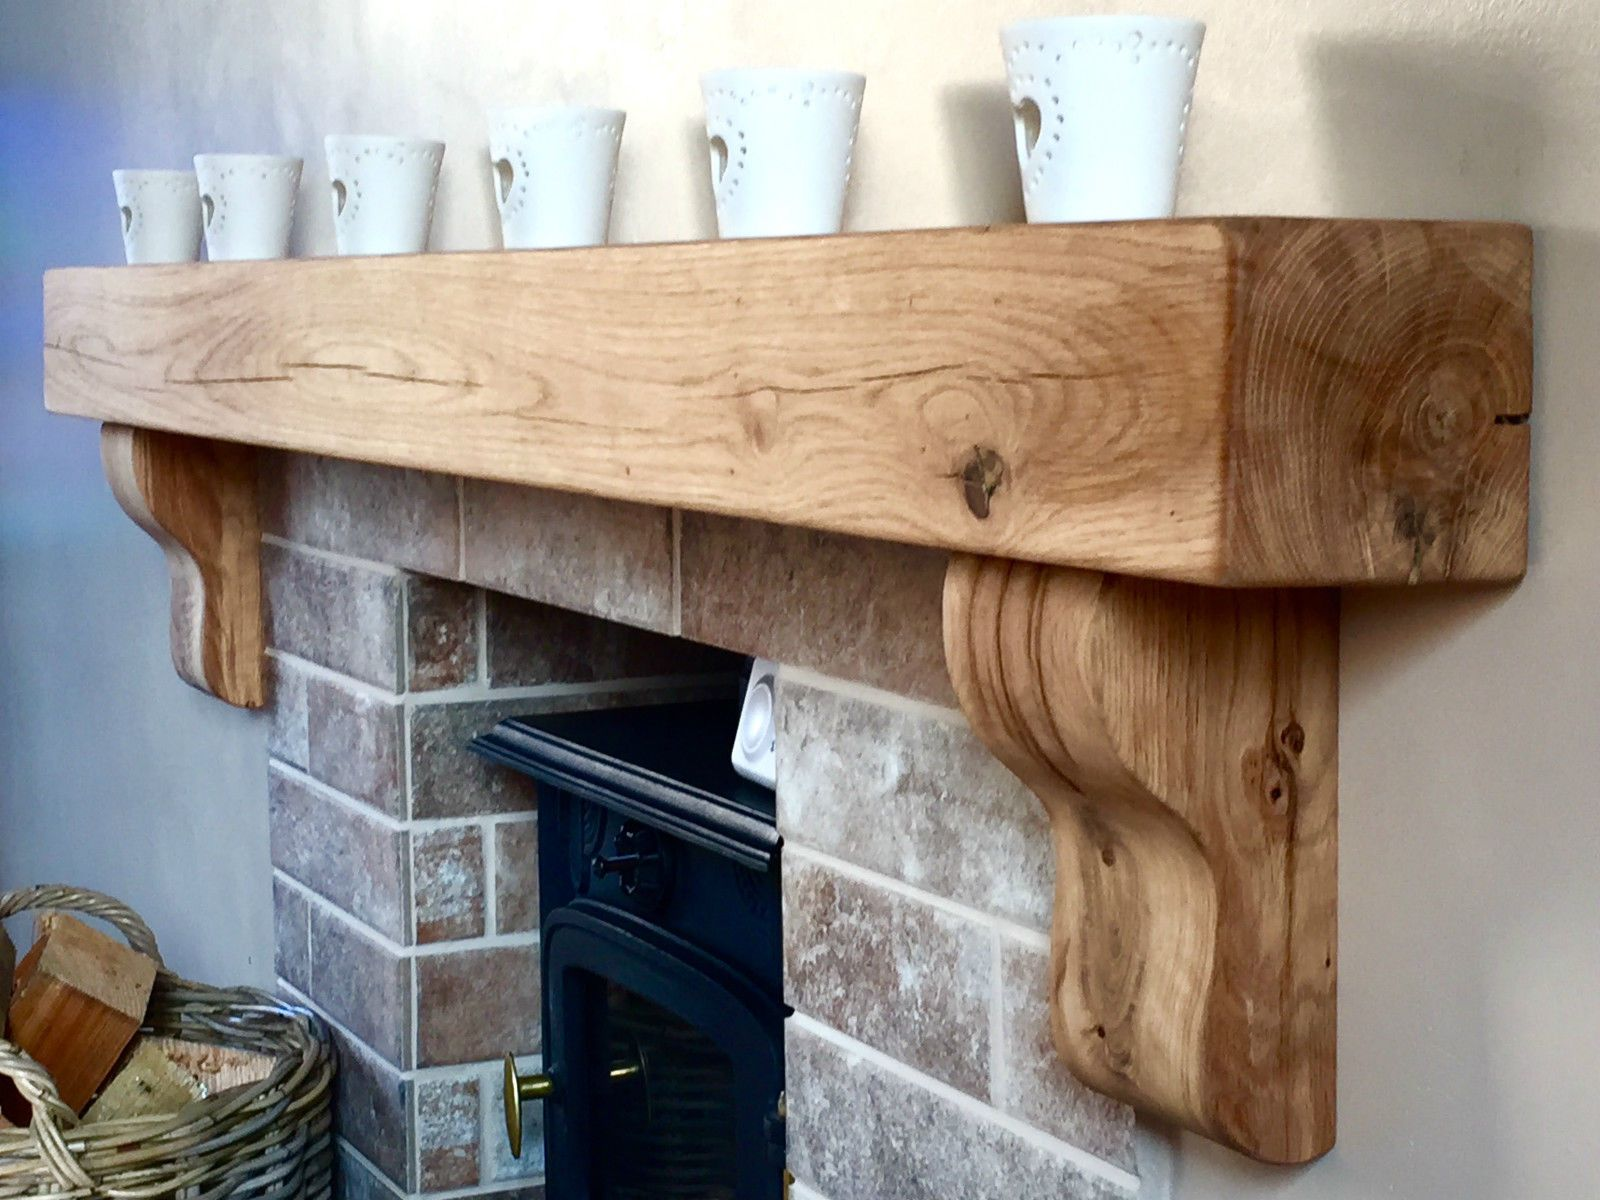 Surprising Solid Oak Beam Floating Shelf Fireplace Mantel Corbels Home Interior And Landscaping Ologienasavecom